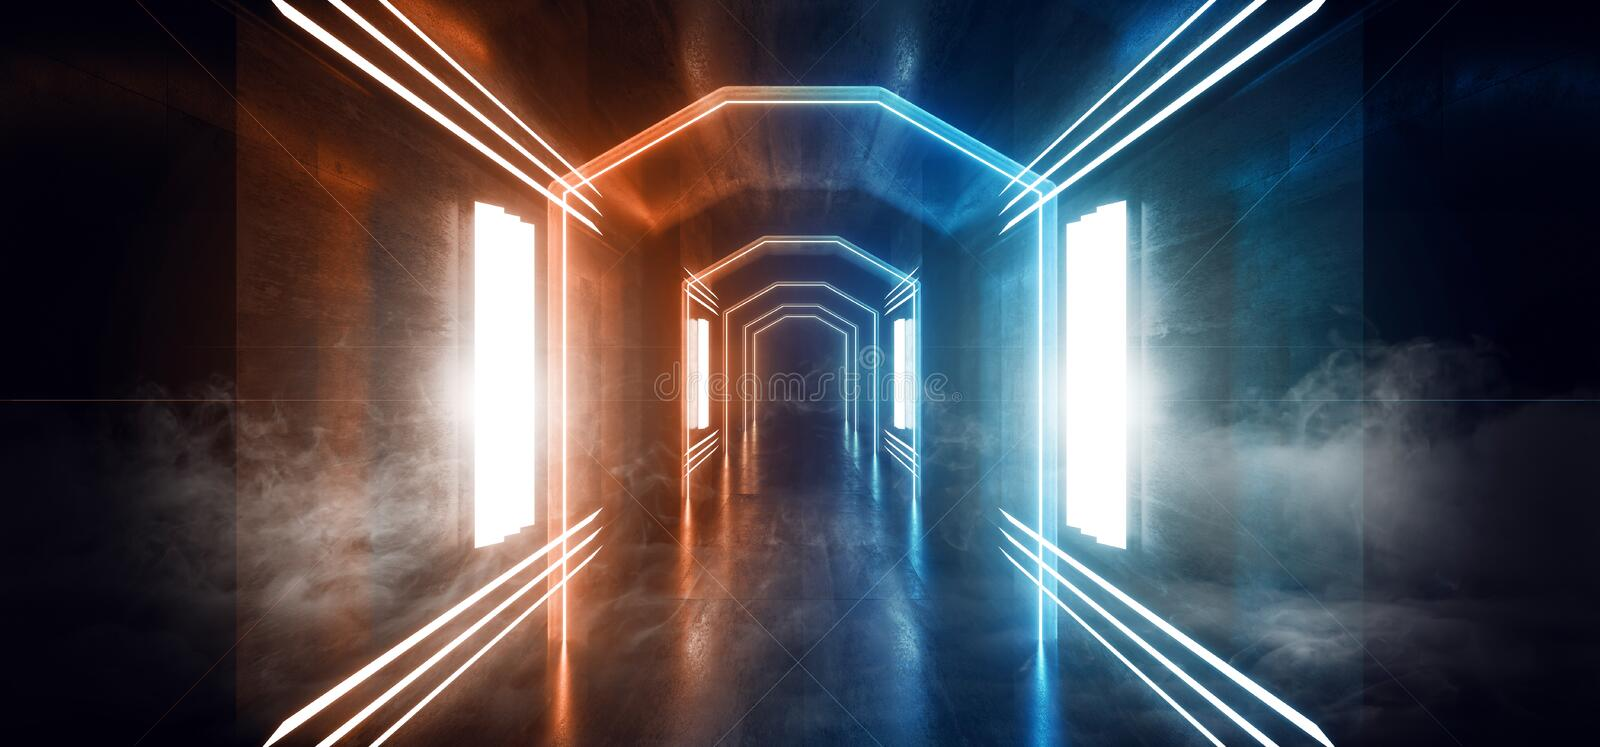 Smoke Fog Mist Big Hall Neon City Retro Modern Virtual Reality Sci Fi Futuristic Blade Runner Orange Blue Concrete Grunge Empty. Background 3D Rendering royalty free illustration